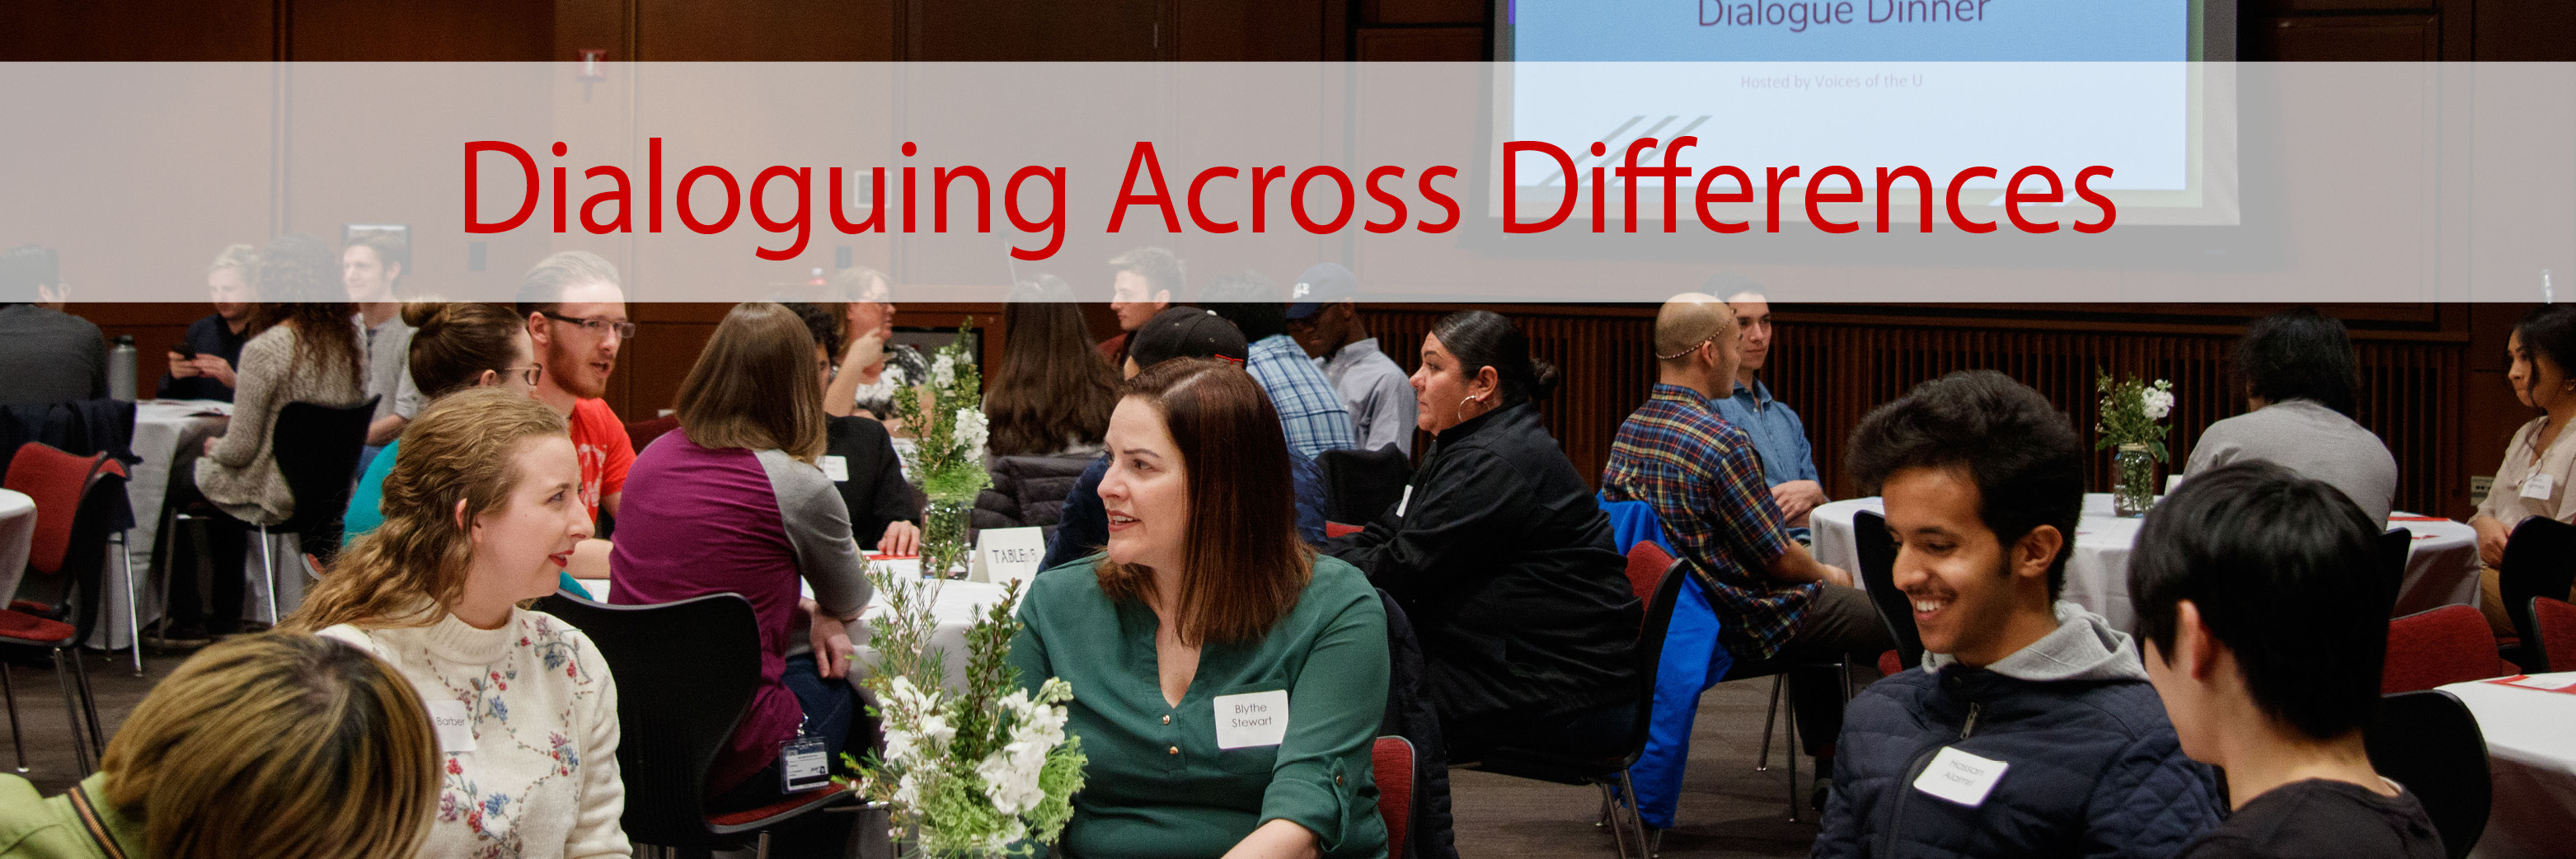 Dialoguing Across Differences